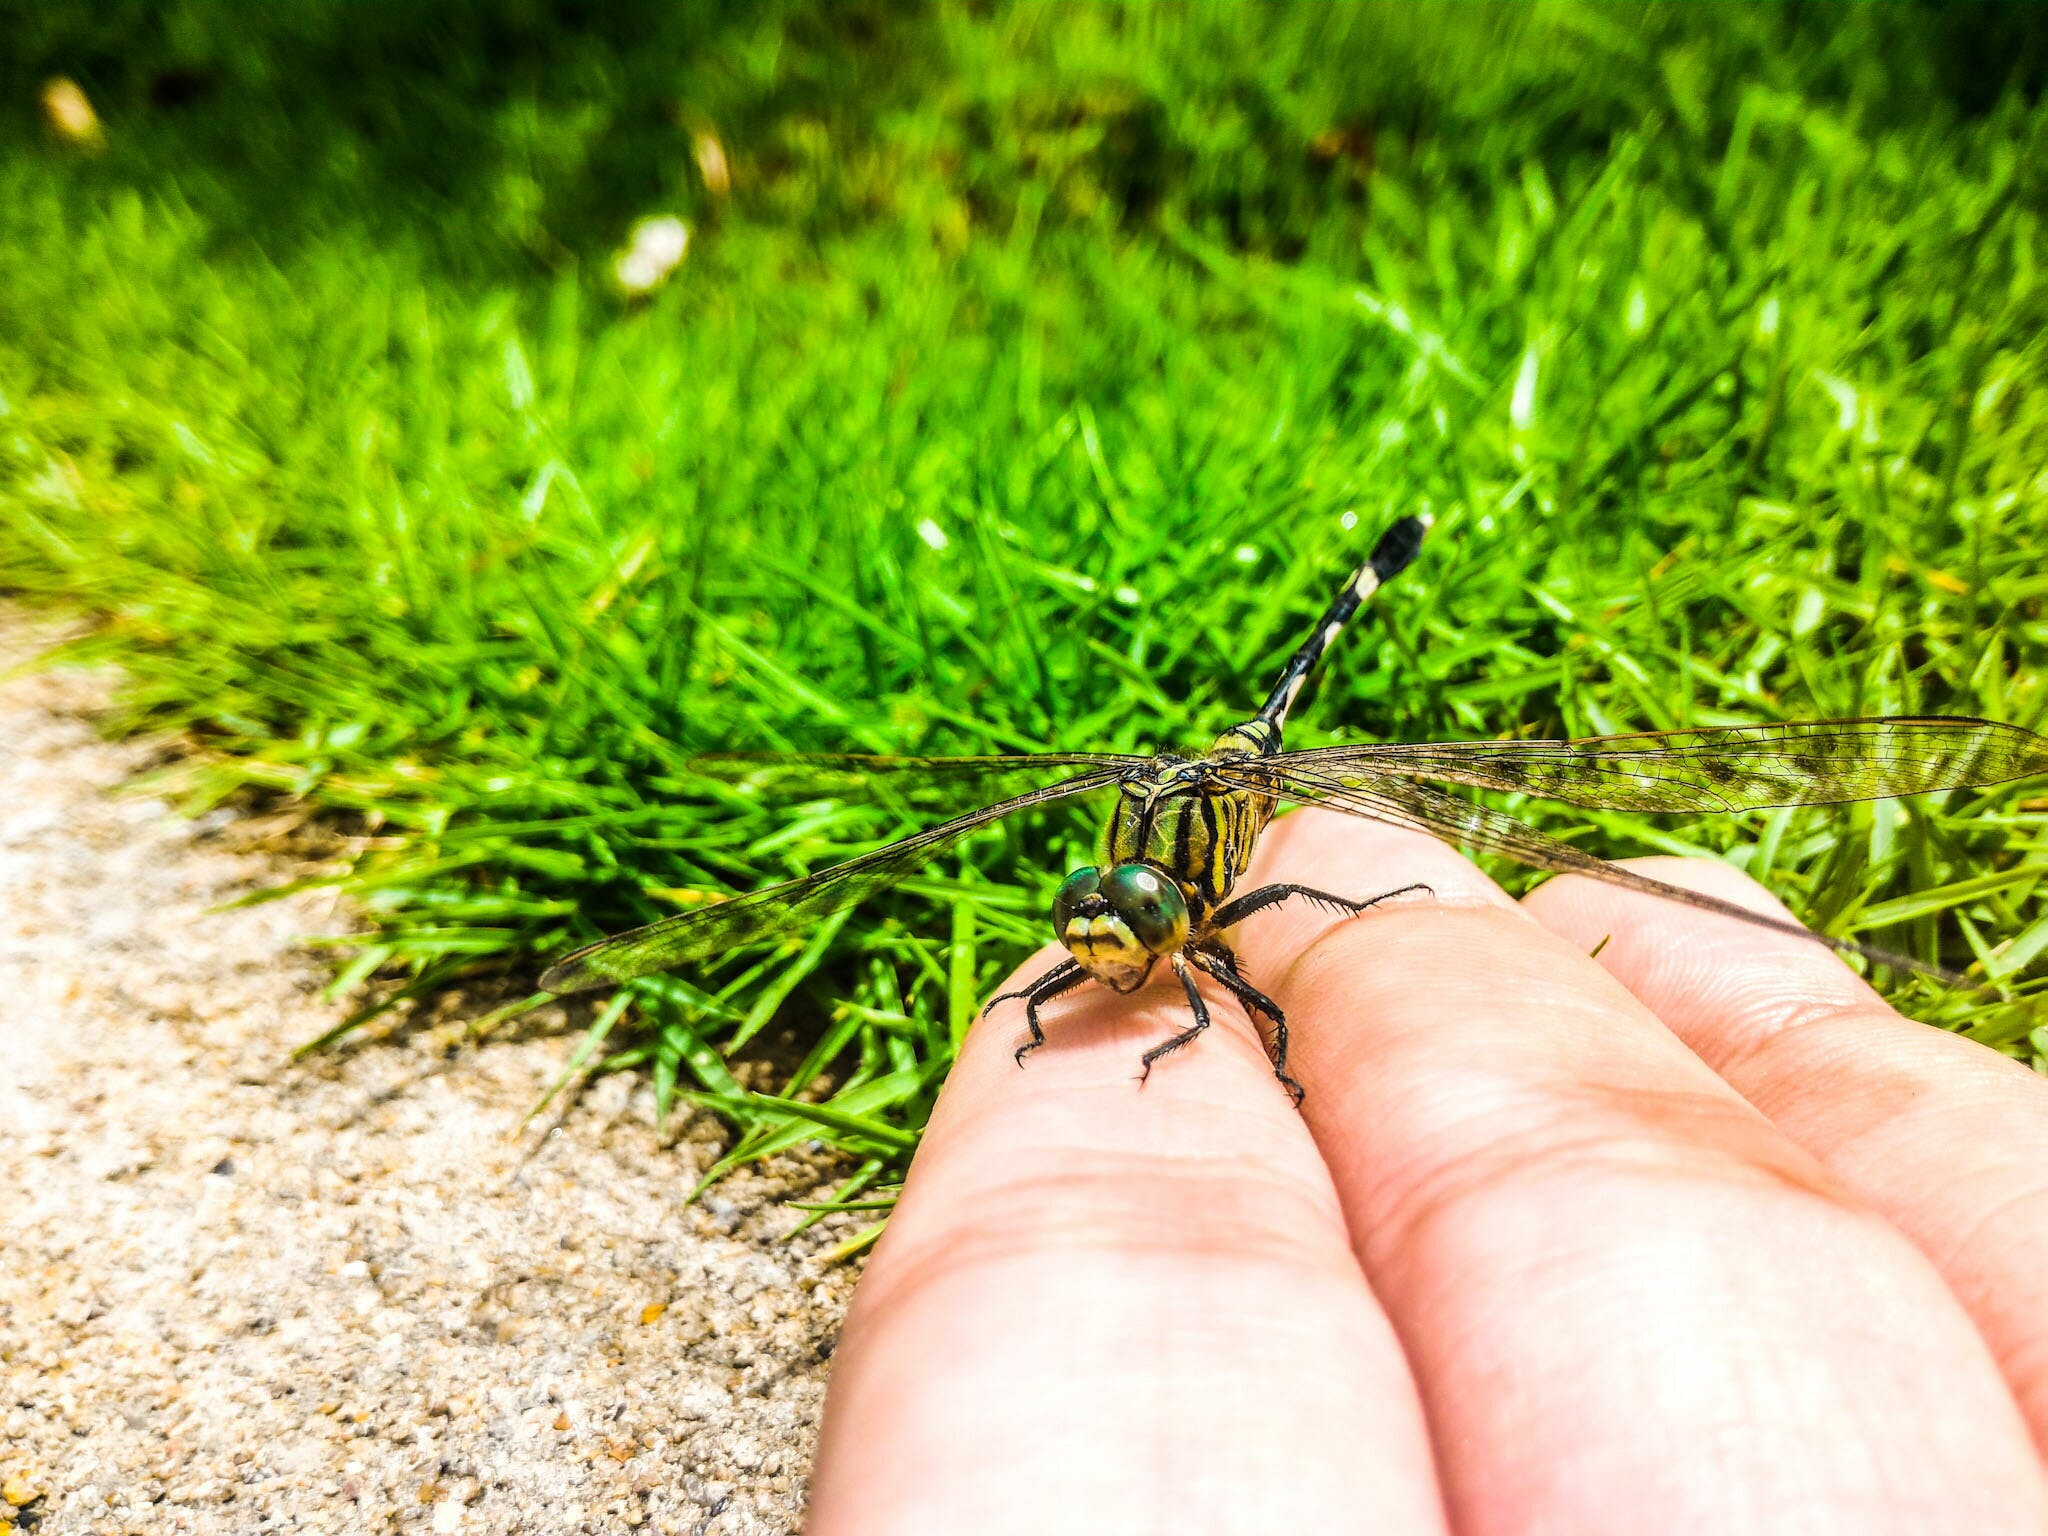 Closeup Photography of Person Handling Green Dragonfly